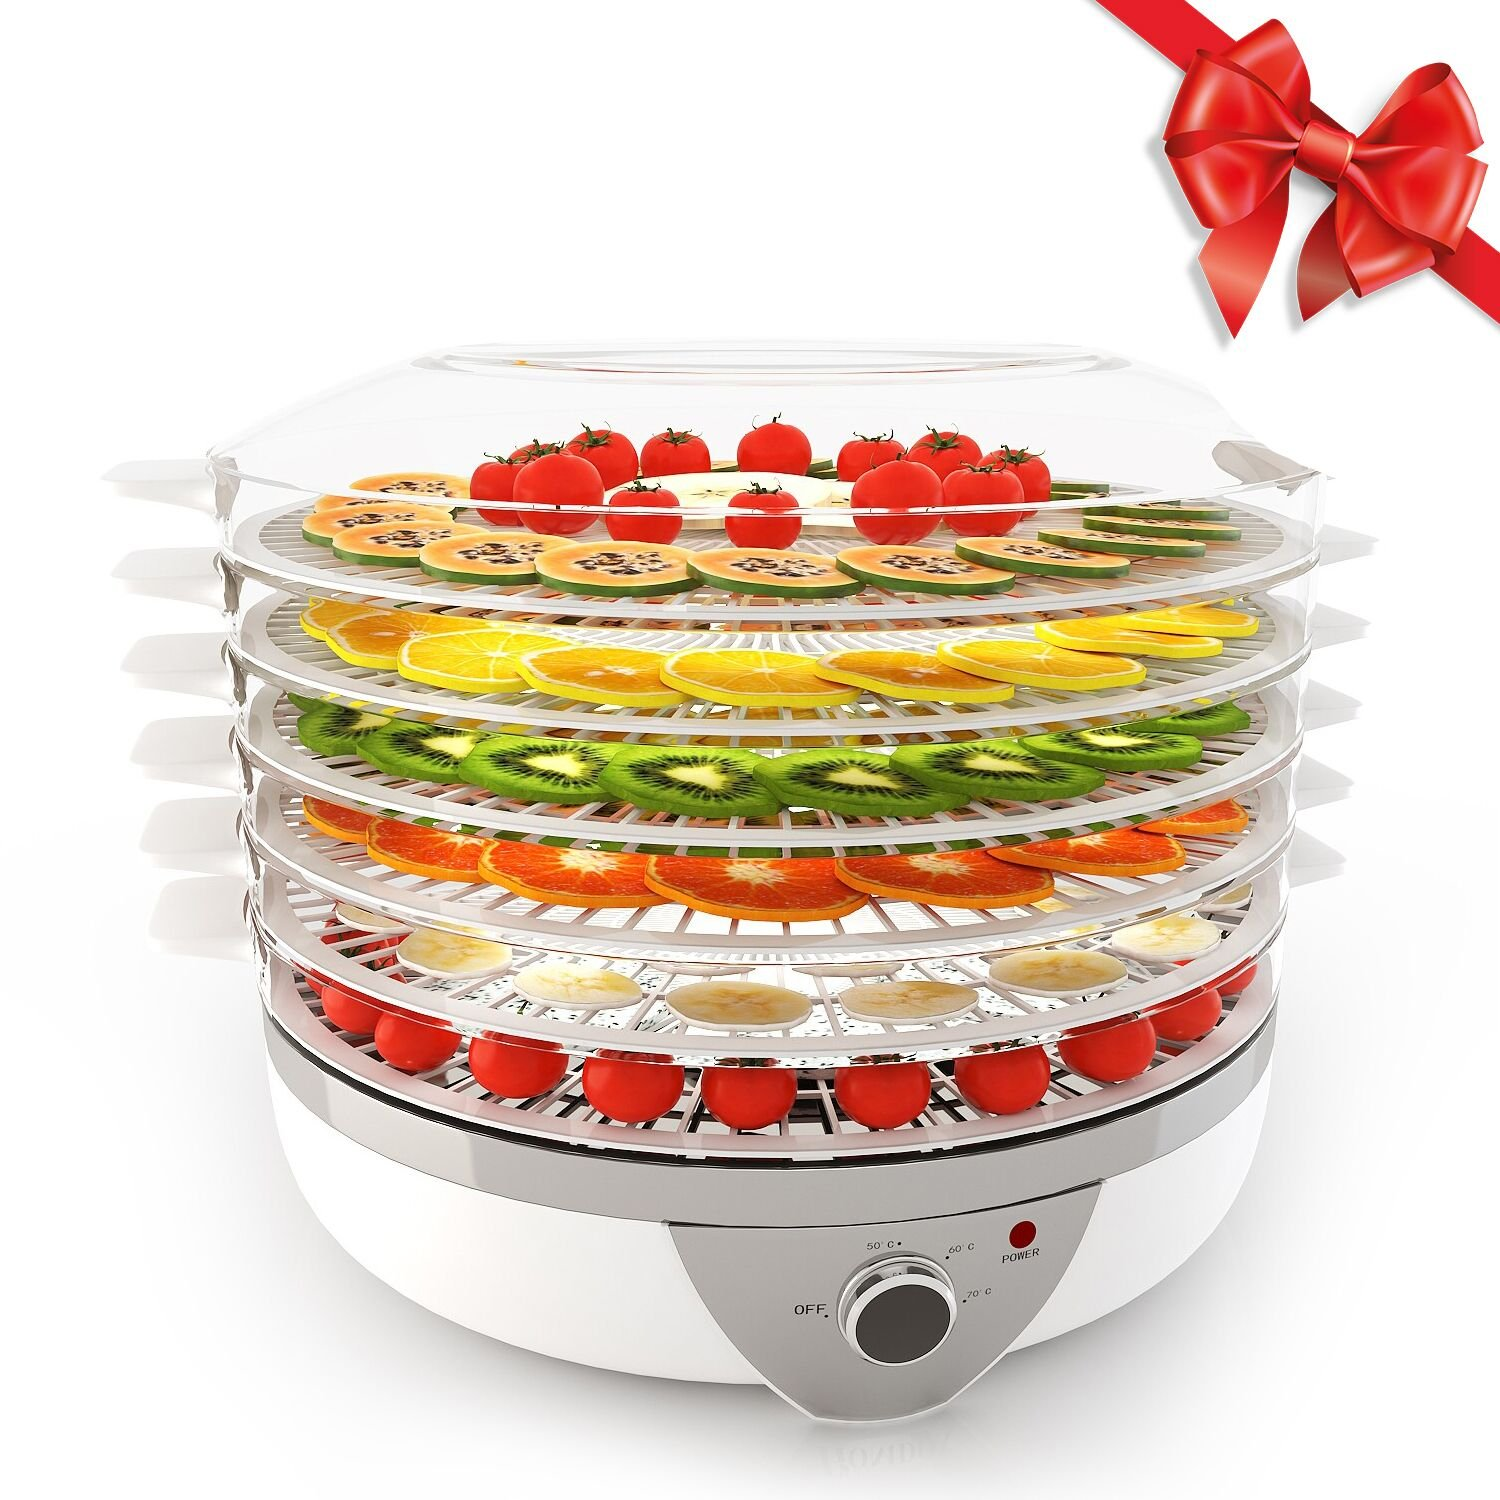 Homdox Food Dehydrator Machine Fruit Dehydrator BPA Free